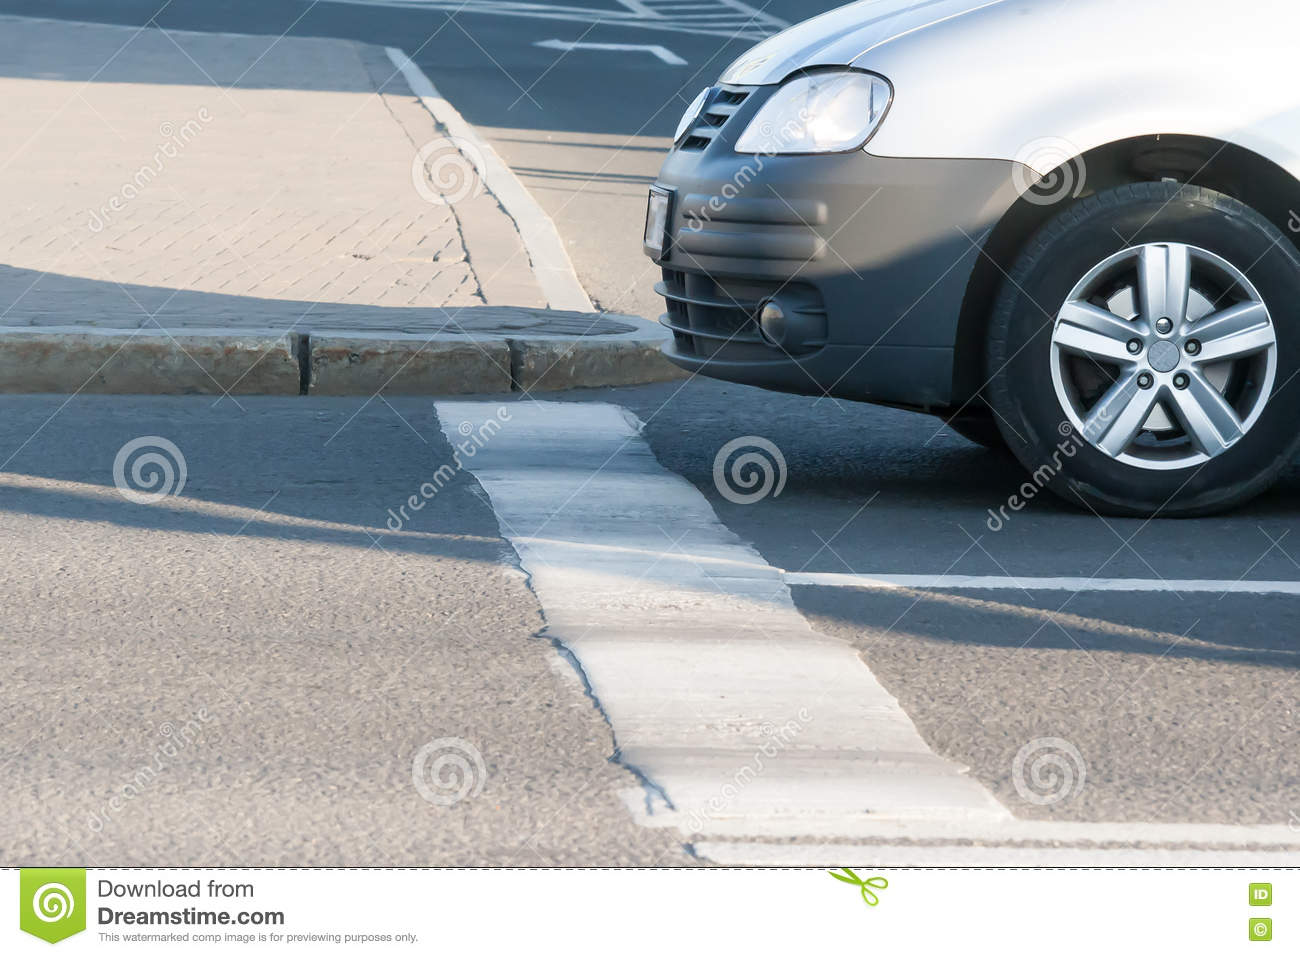 The car which has stopped forward wheels before the stop line